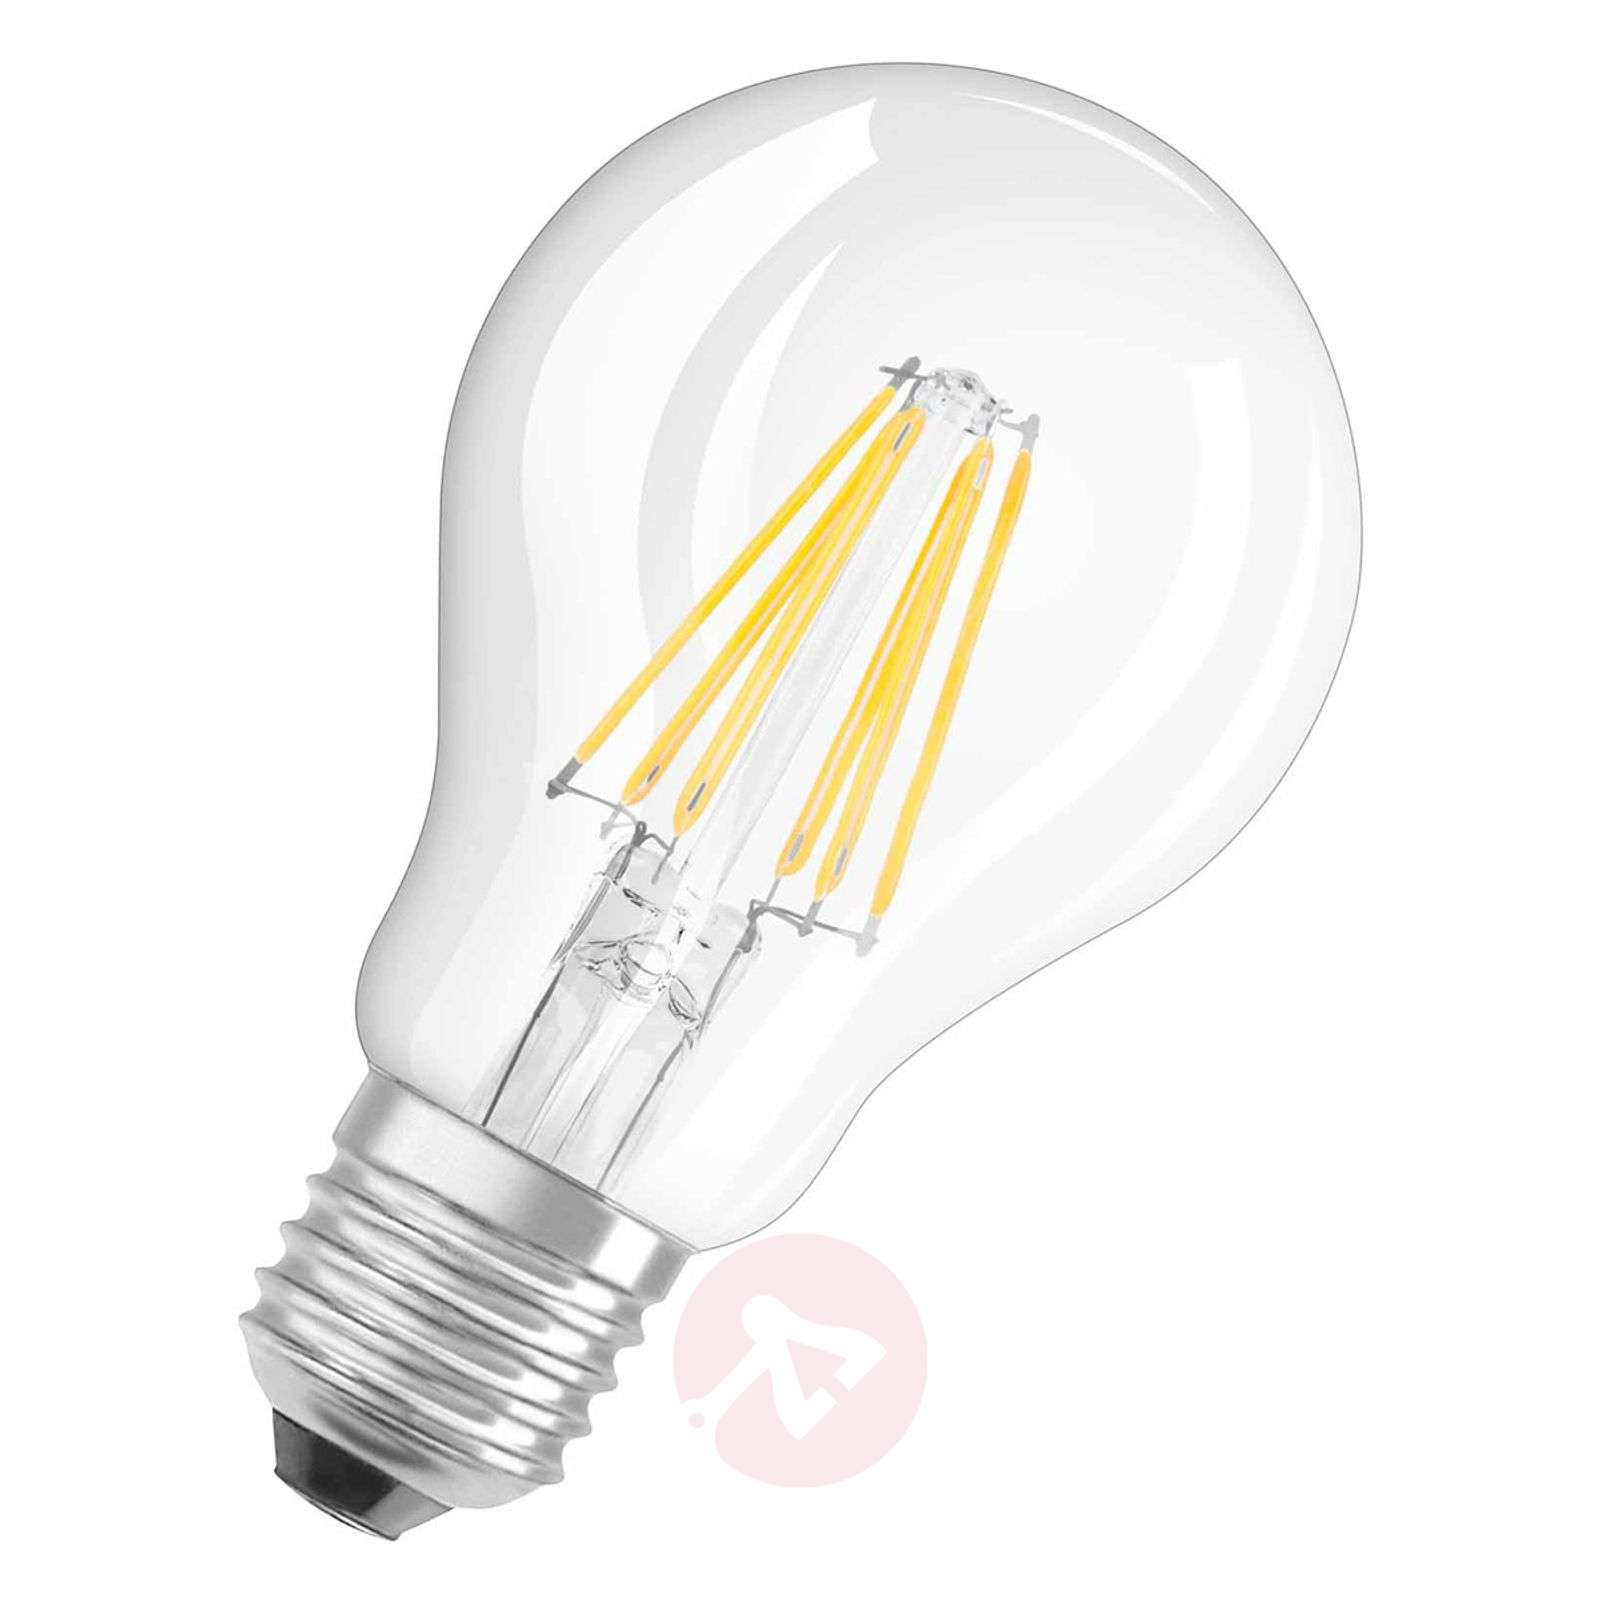 E27 7W 827 filament LED bulb, set of two-7260965-01